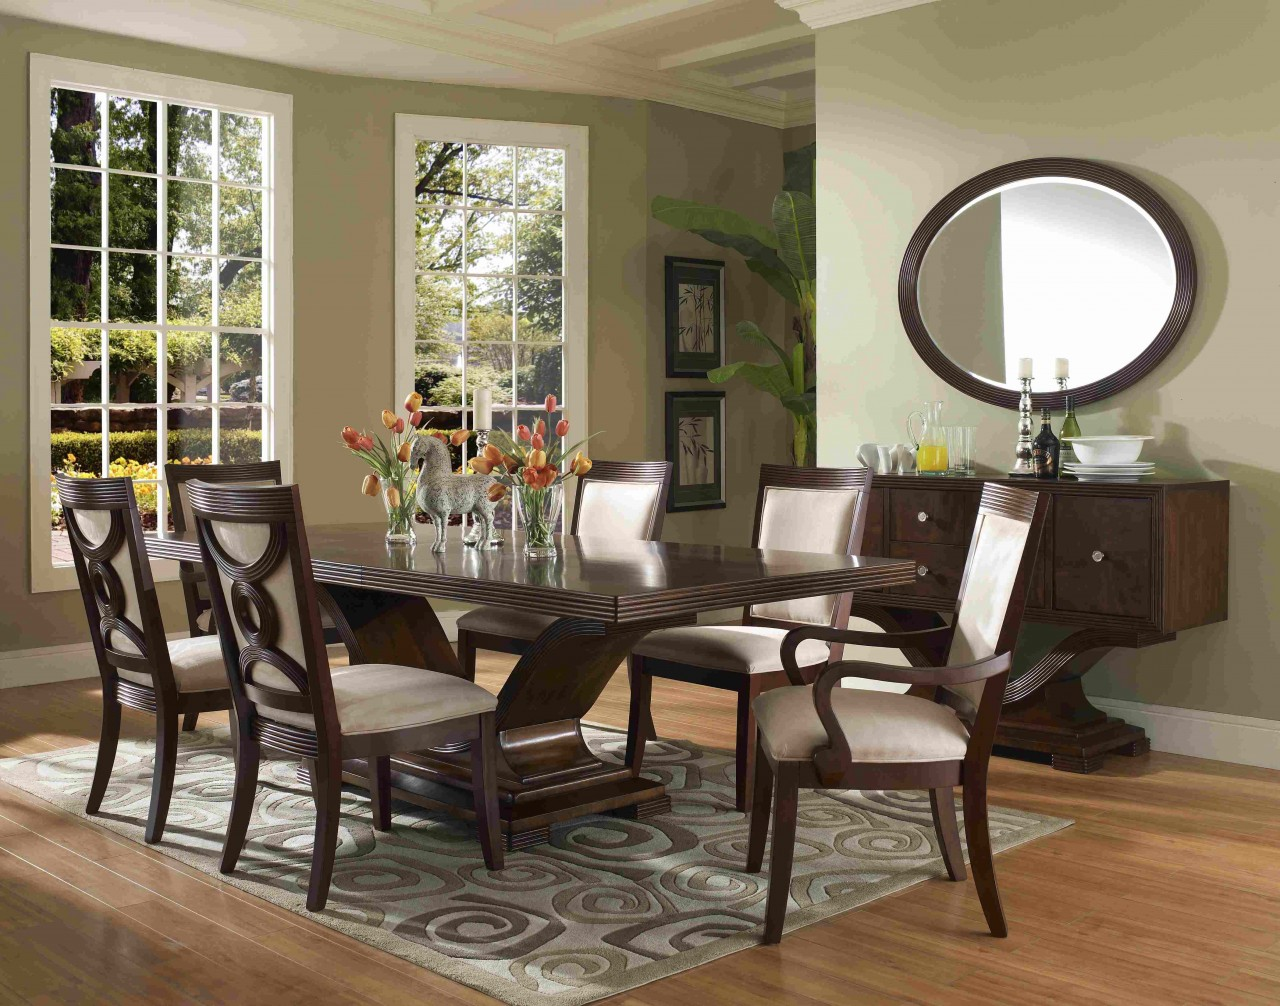 Formal Dining Sets perfect formal dining room sets for 8 homesfeed. the formal dining